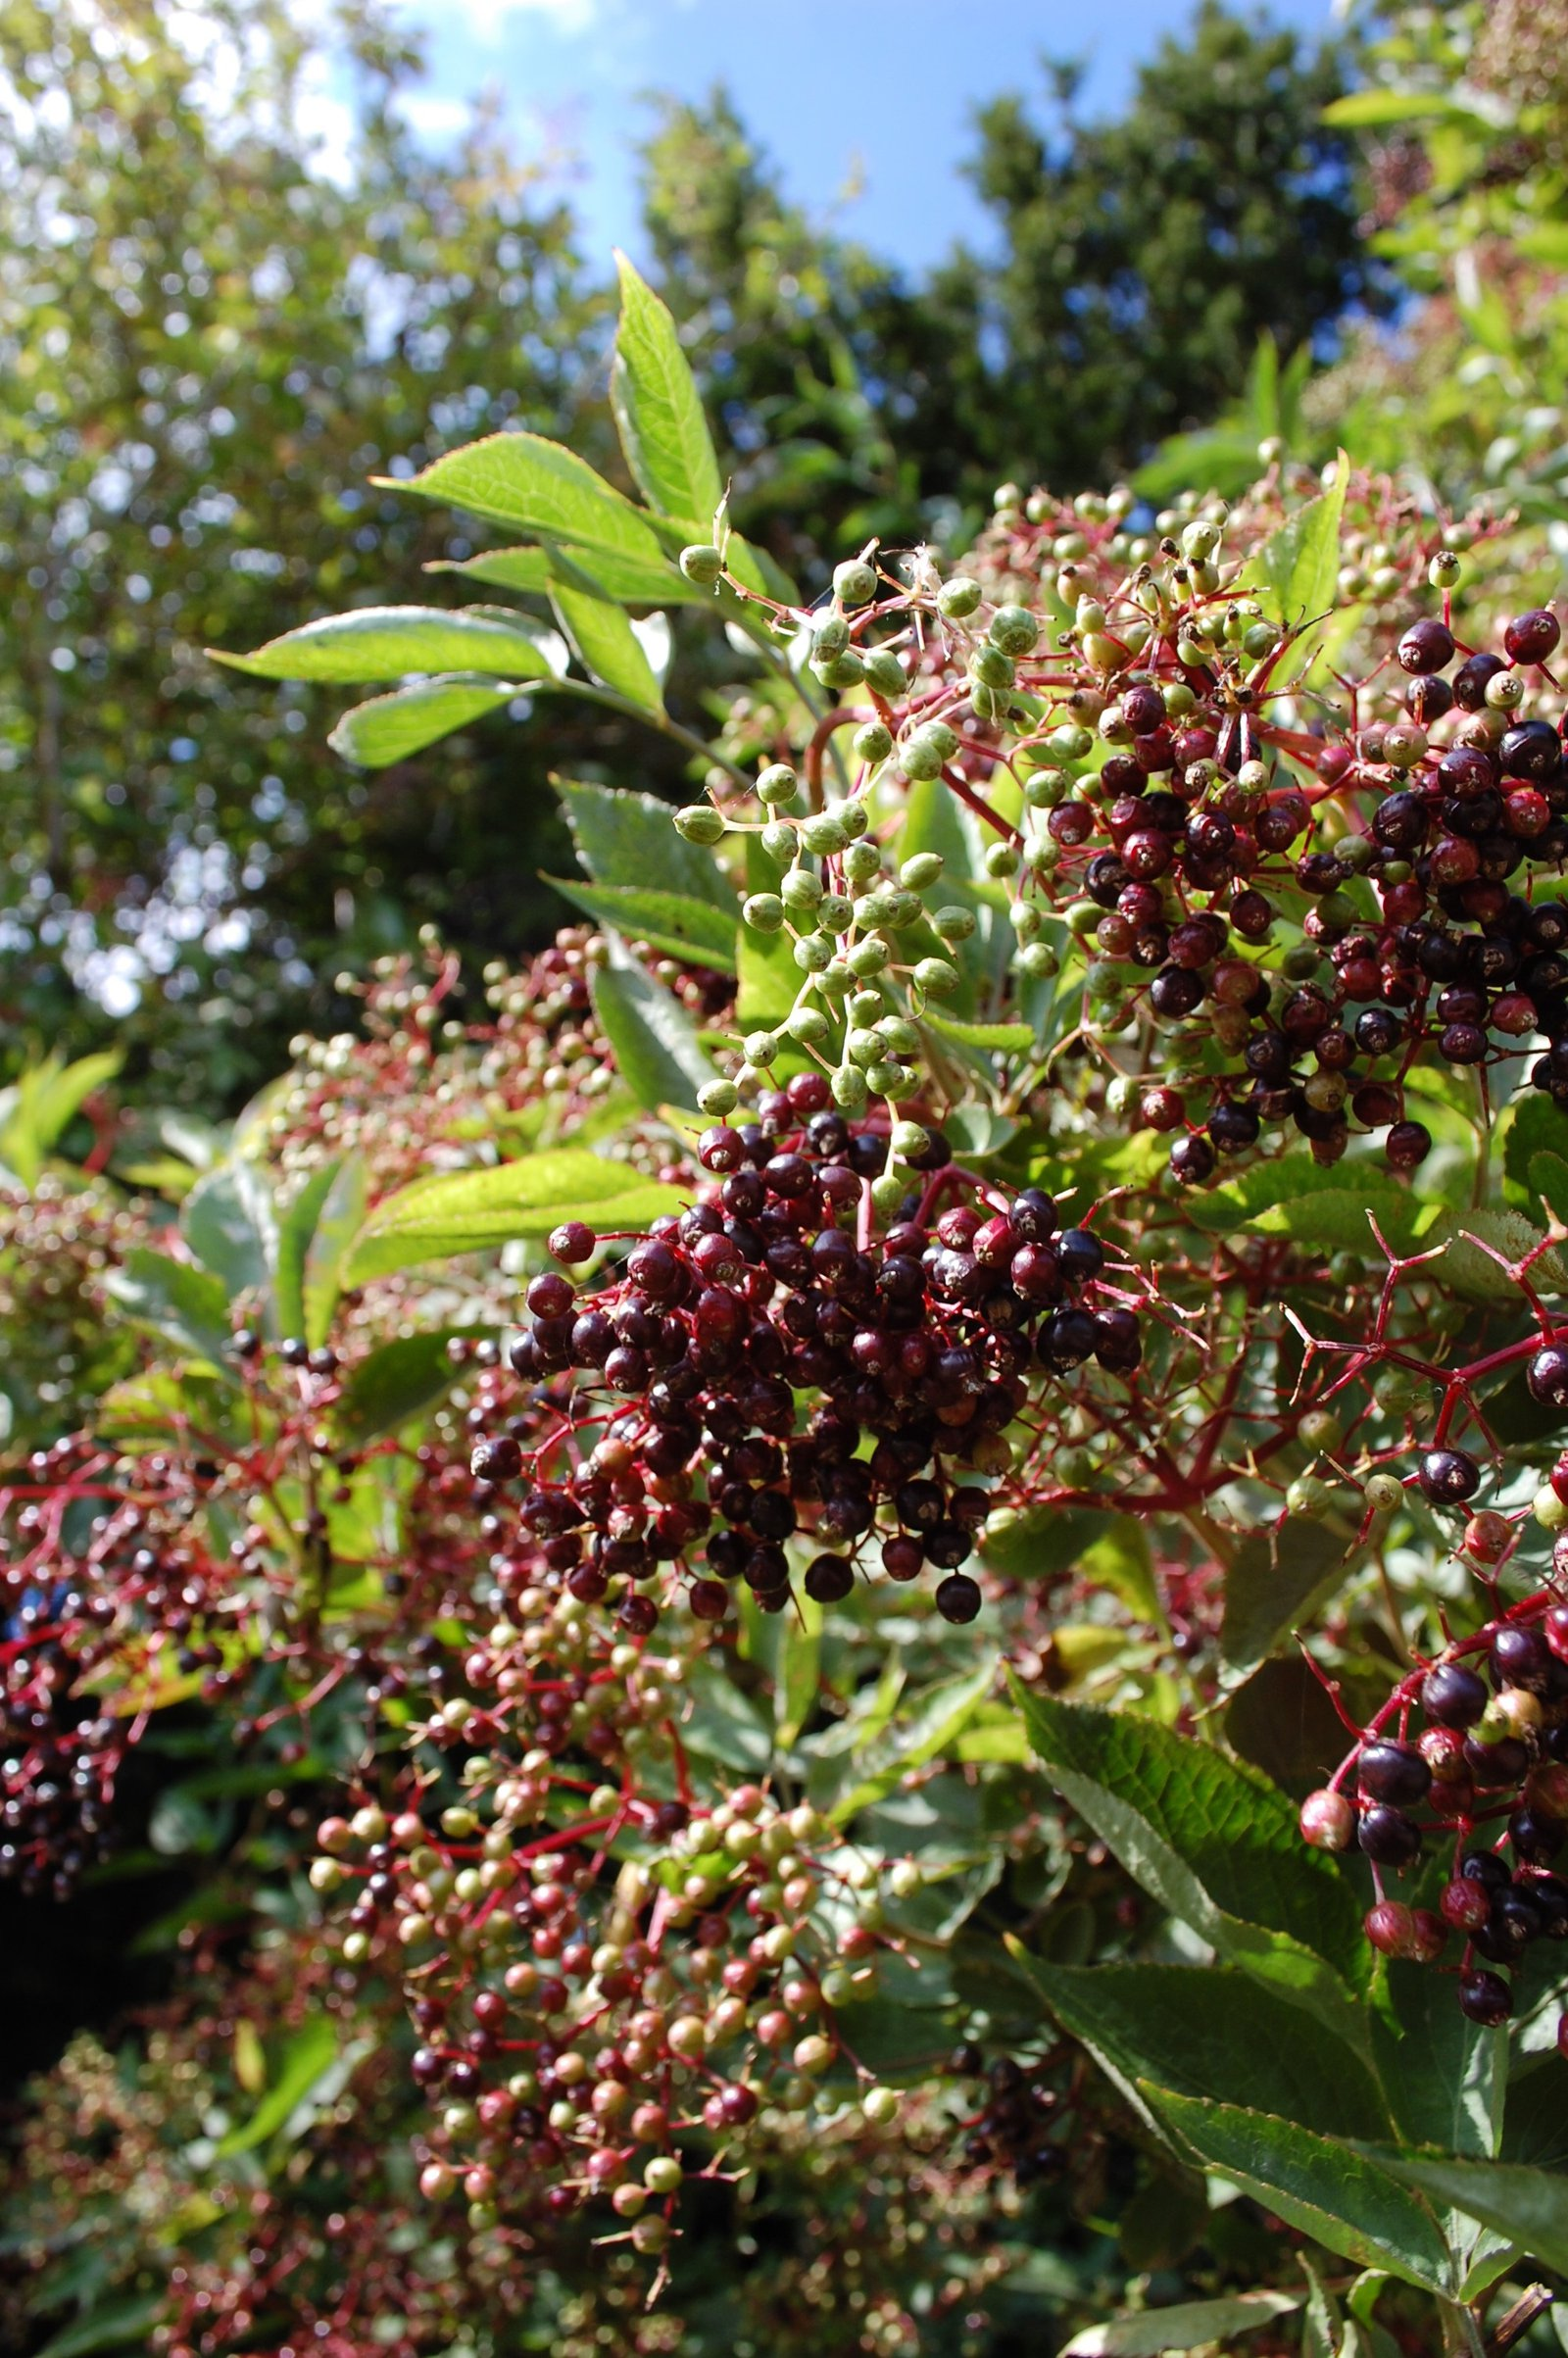 Elder berries ripening on elder hedgerow